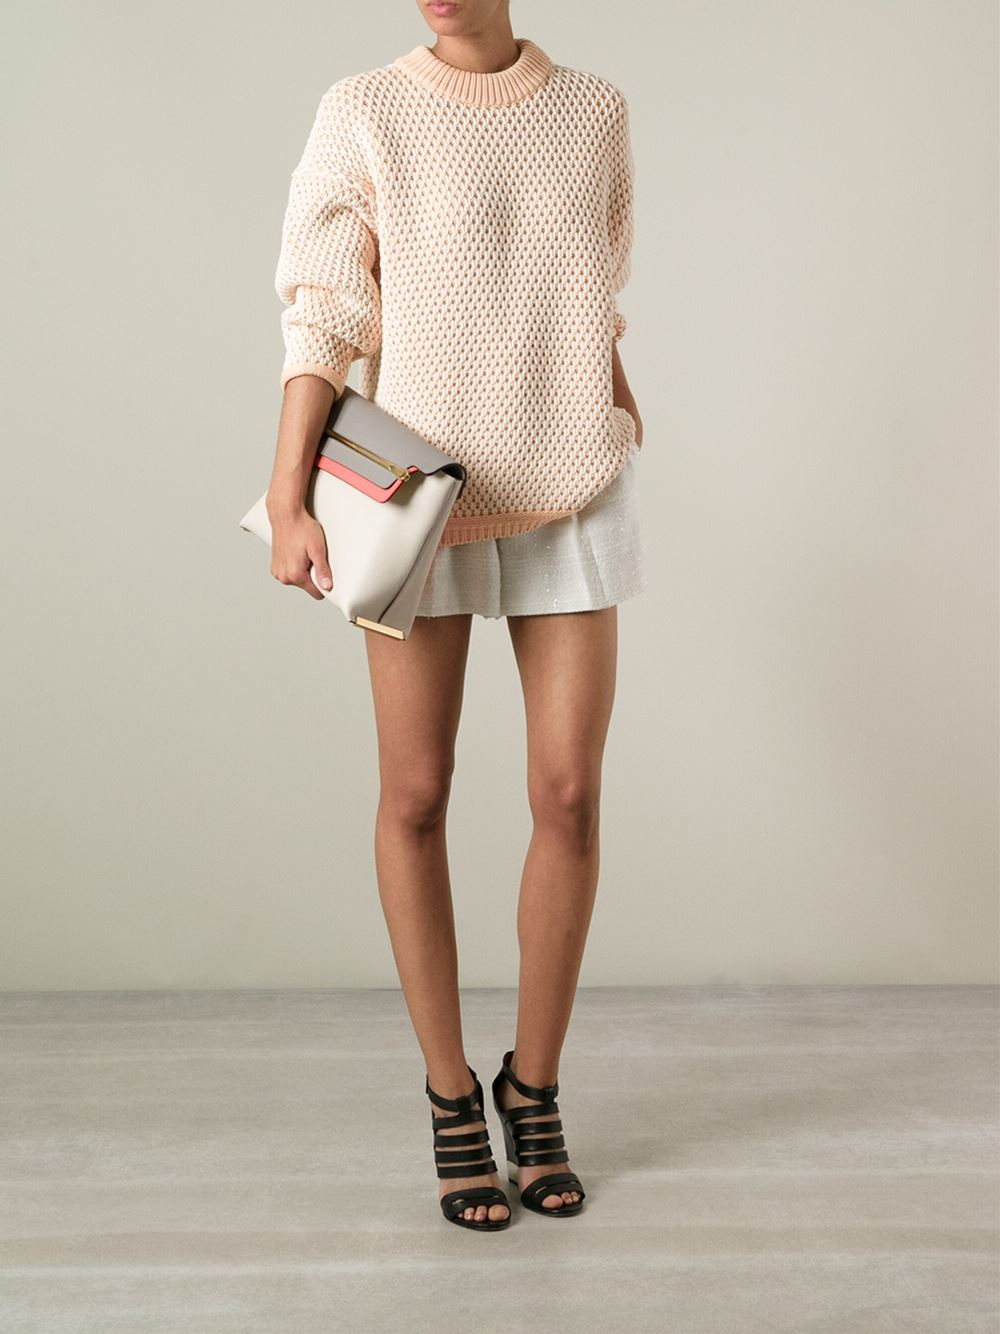 Chlo¨¦ \u0026#39;Clare\u0026#39; Shoulder Bag in Beige (nude \u0026amp; neutrals) | Lyst